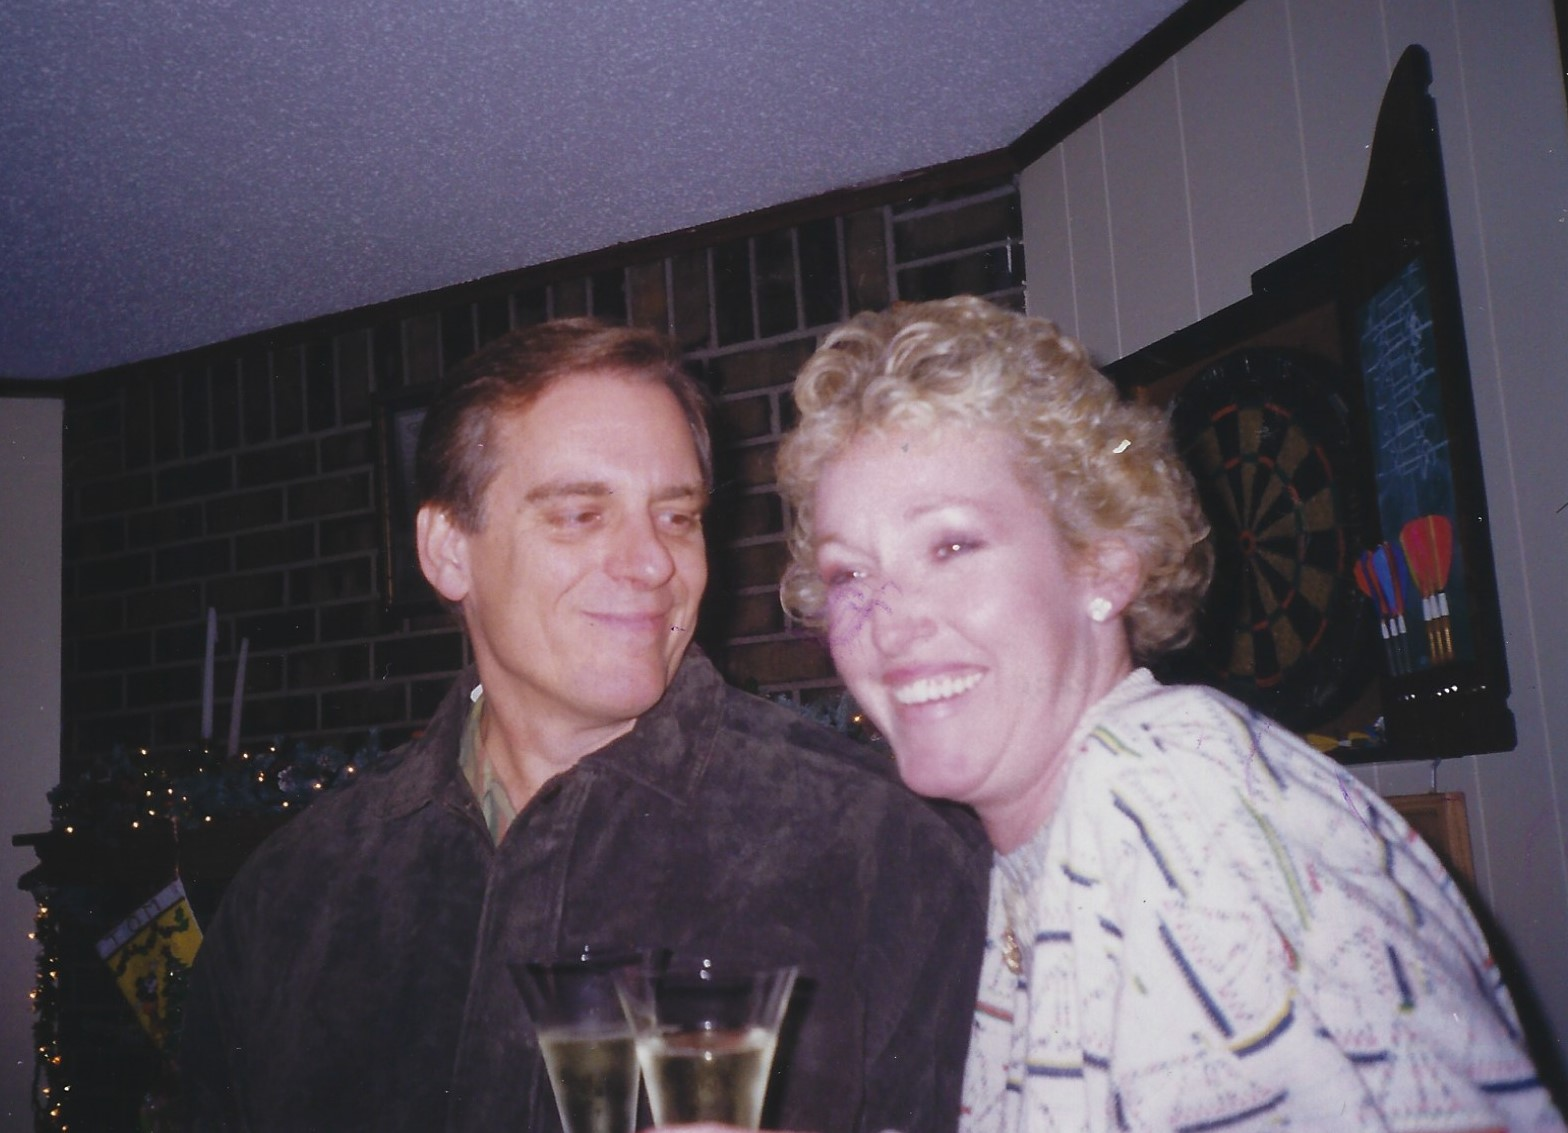 Beverley and Frank celebrating New Years Eve at the Gray's